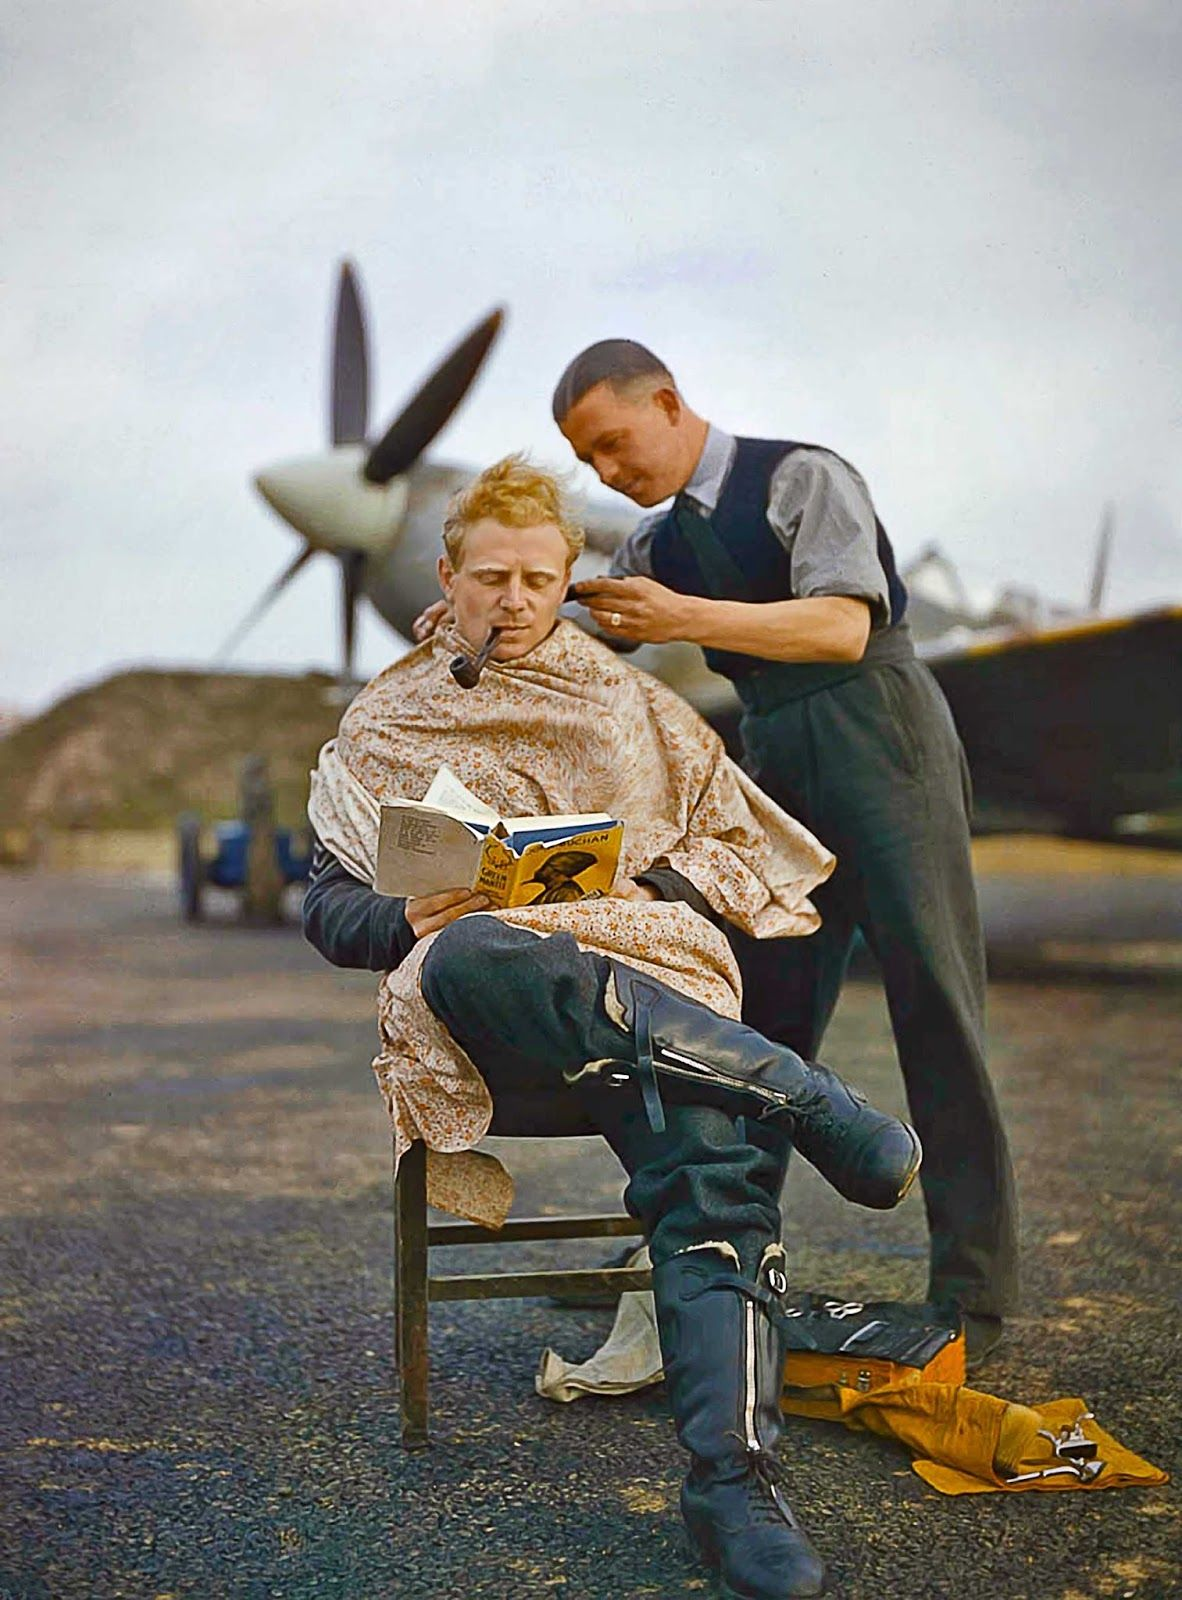 A pilot at Fairlop airfield in Essex has a haircut during a break between sweeps. A Supermarine Spitfire is in the background. 1942.